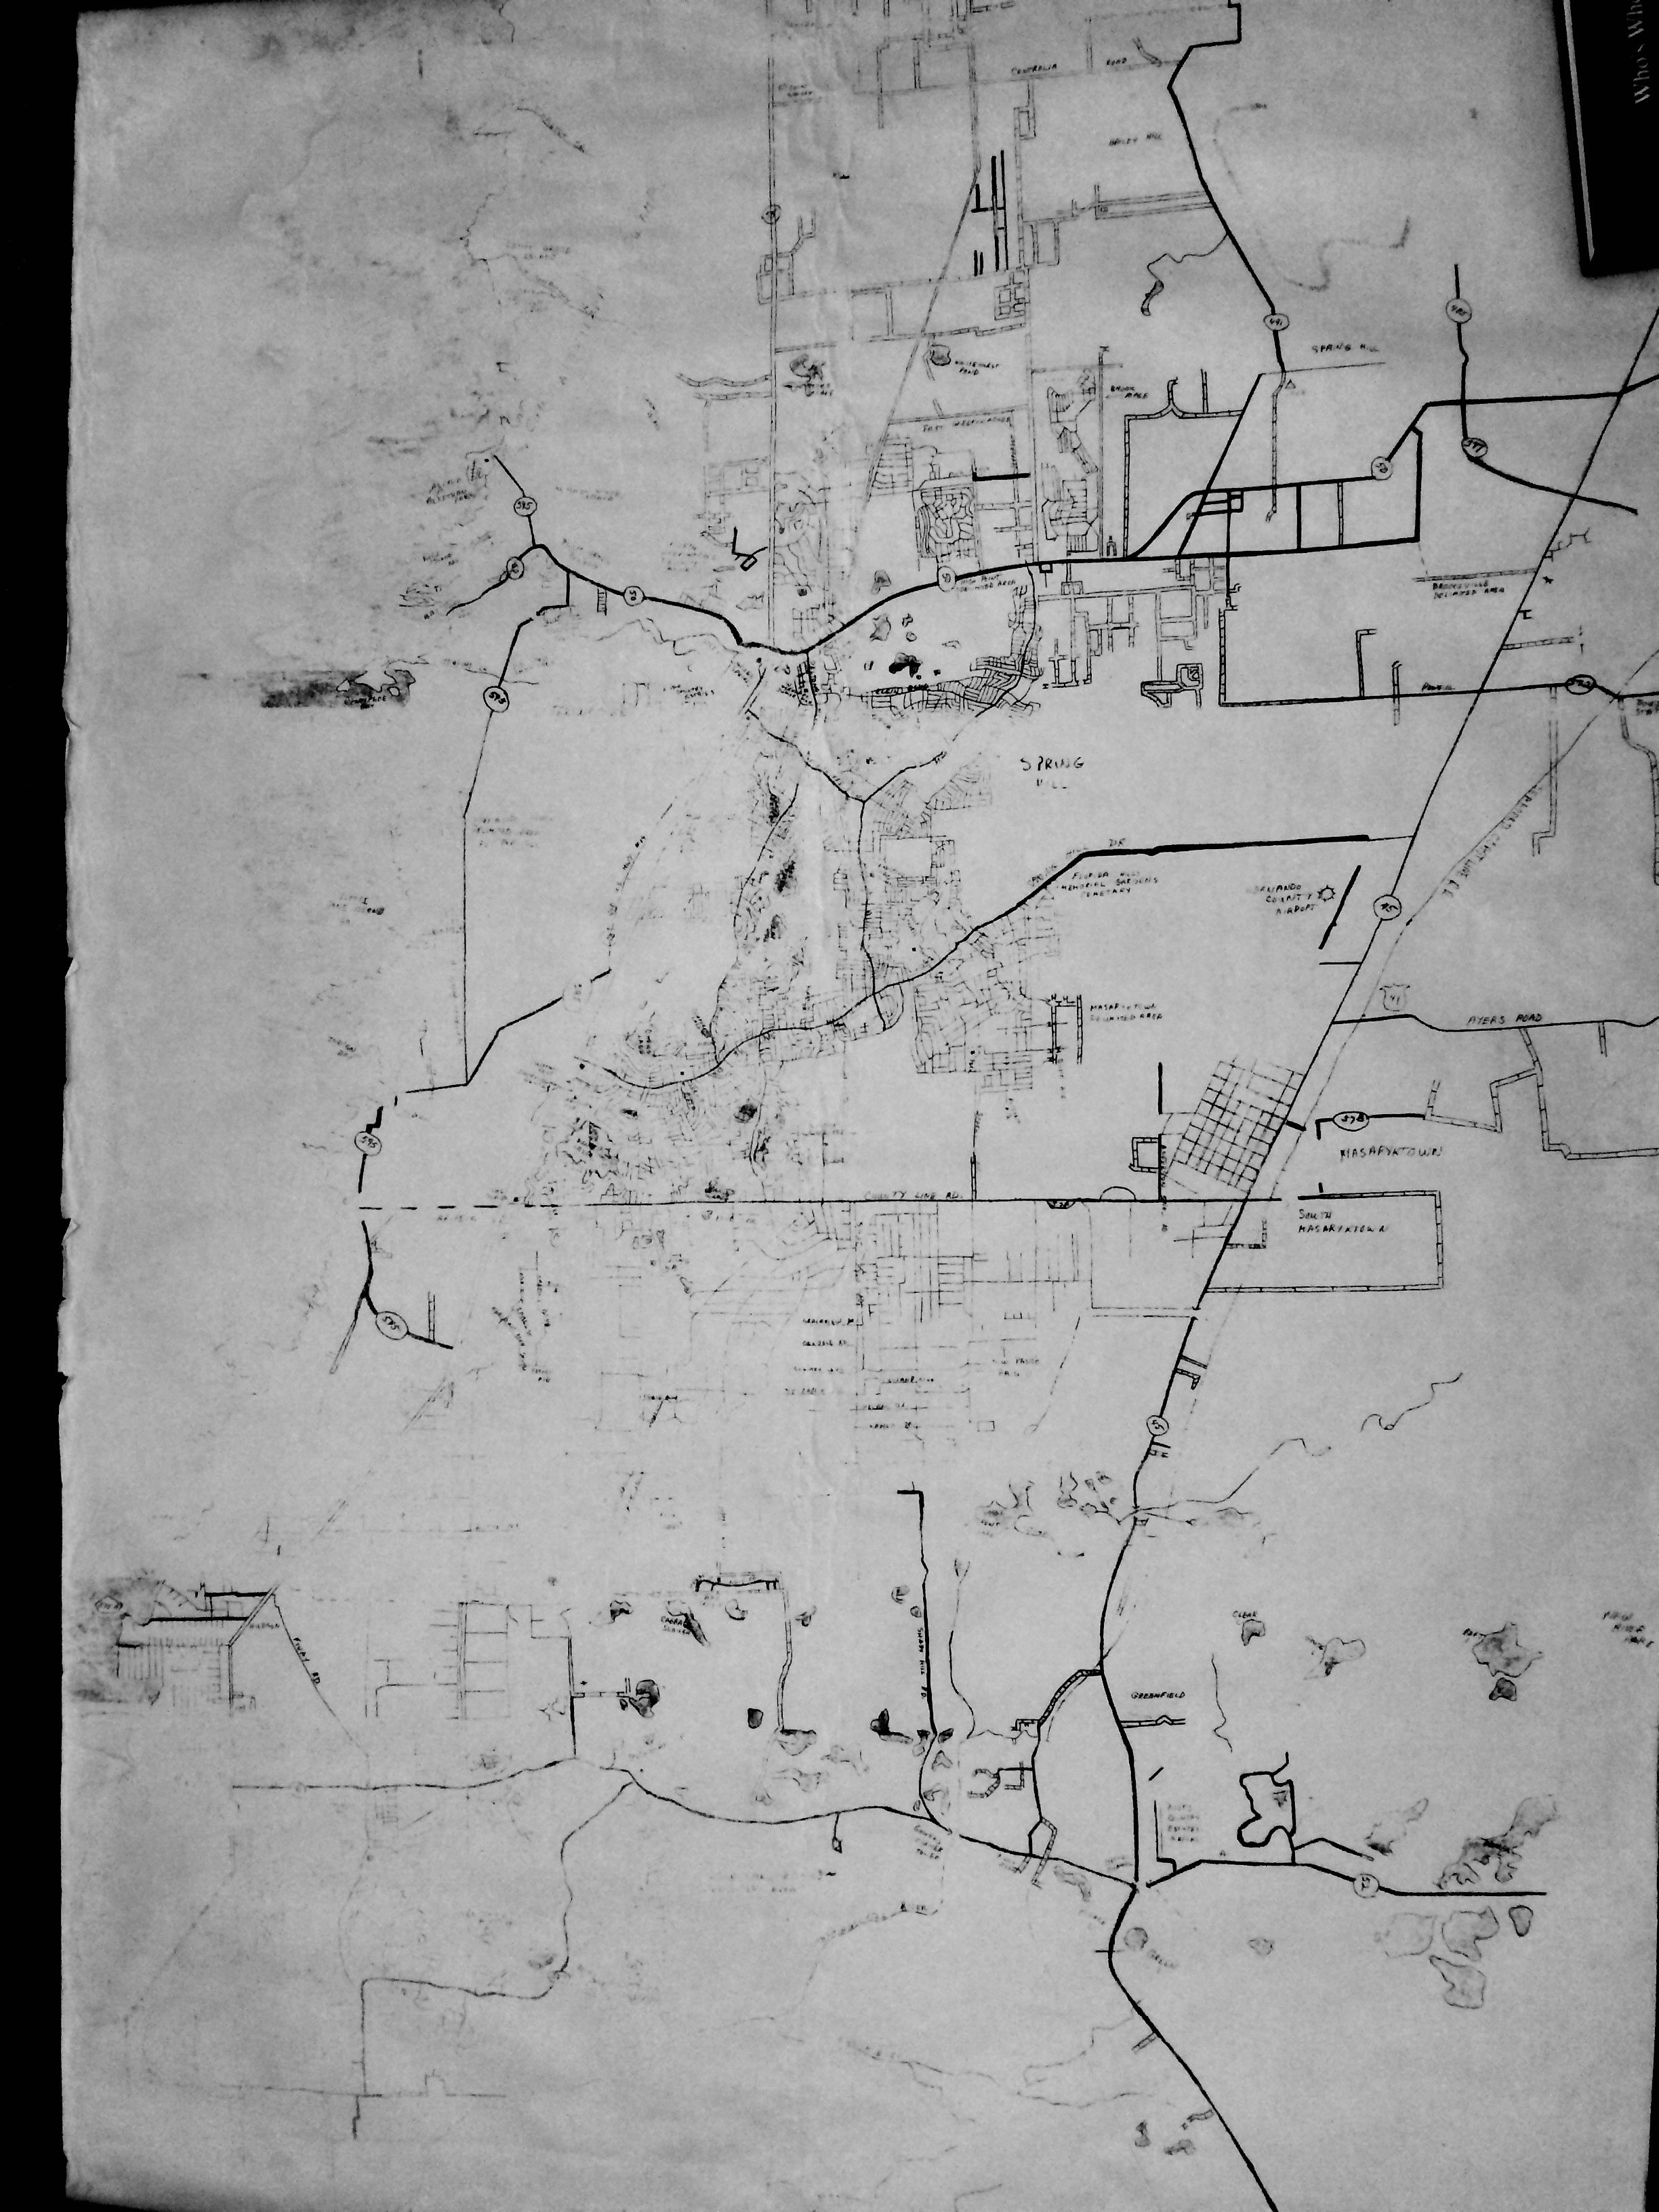 An Old Map Of Hernando County Florida. | My Drawings, Paintings And - Map Of Hernando County Florida